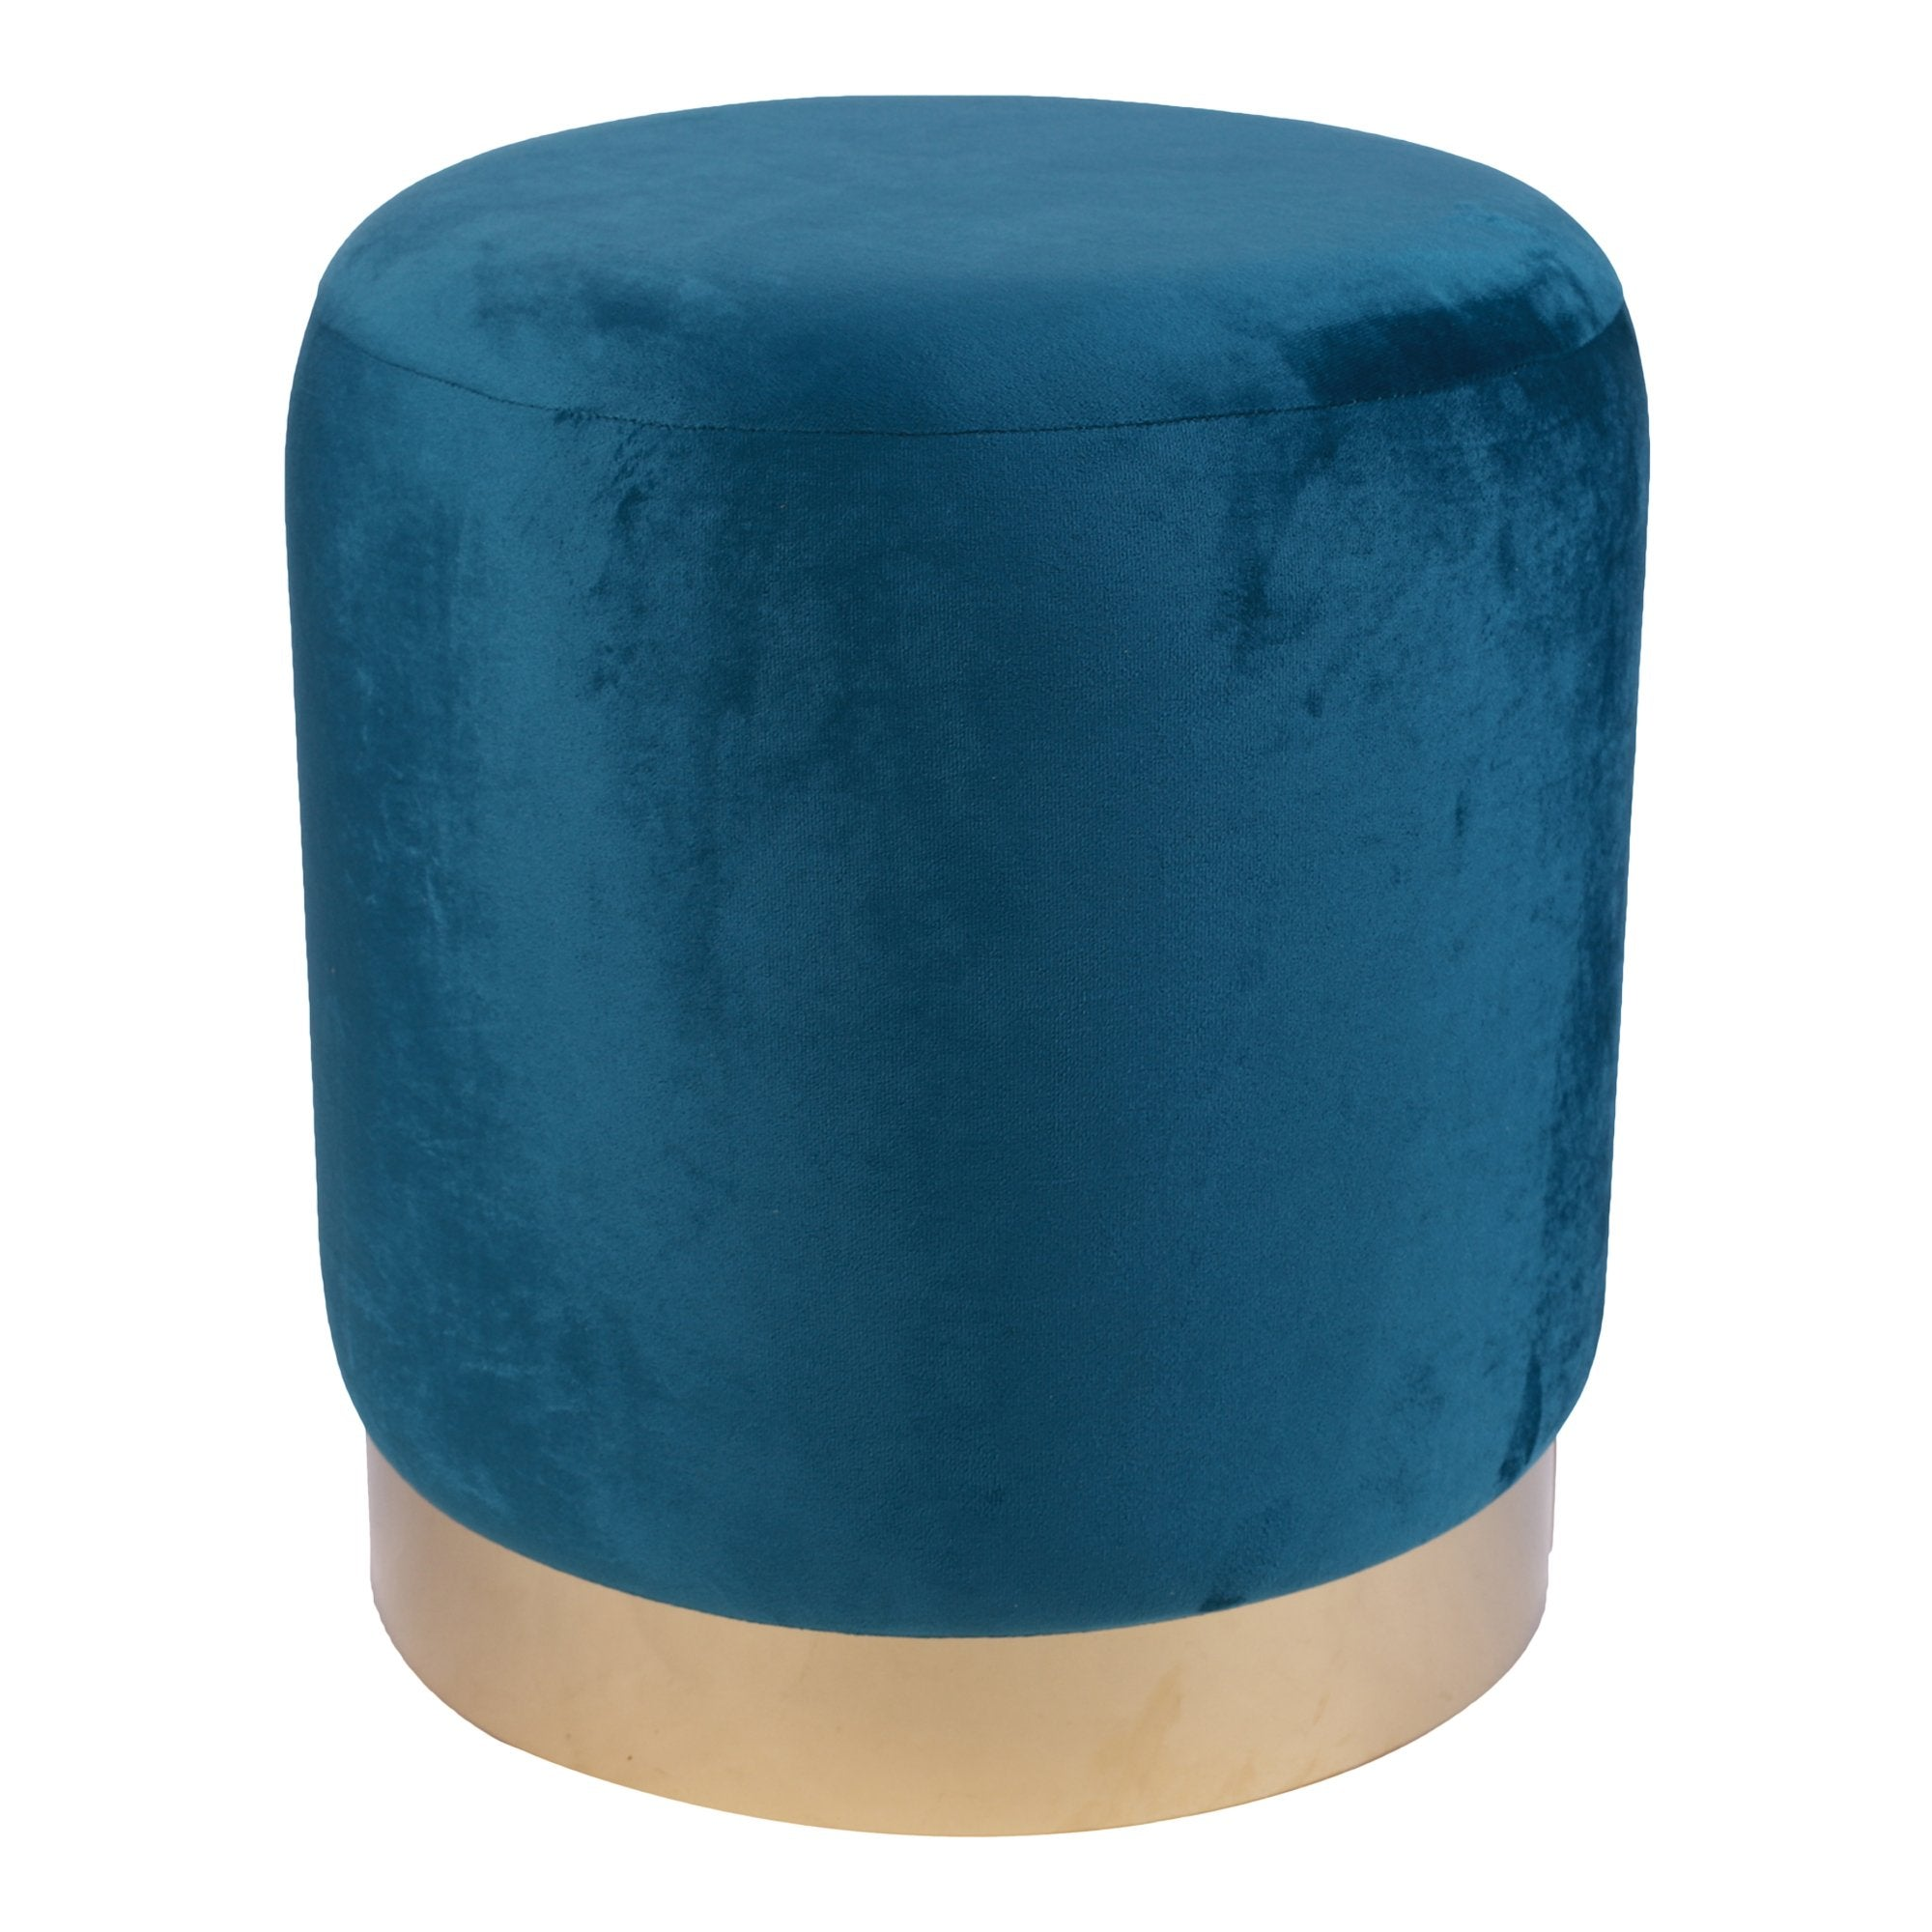 Round Ottoman in Royal Blue Color - Teak Tale